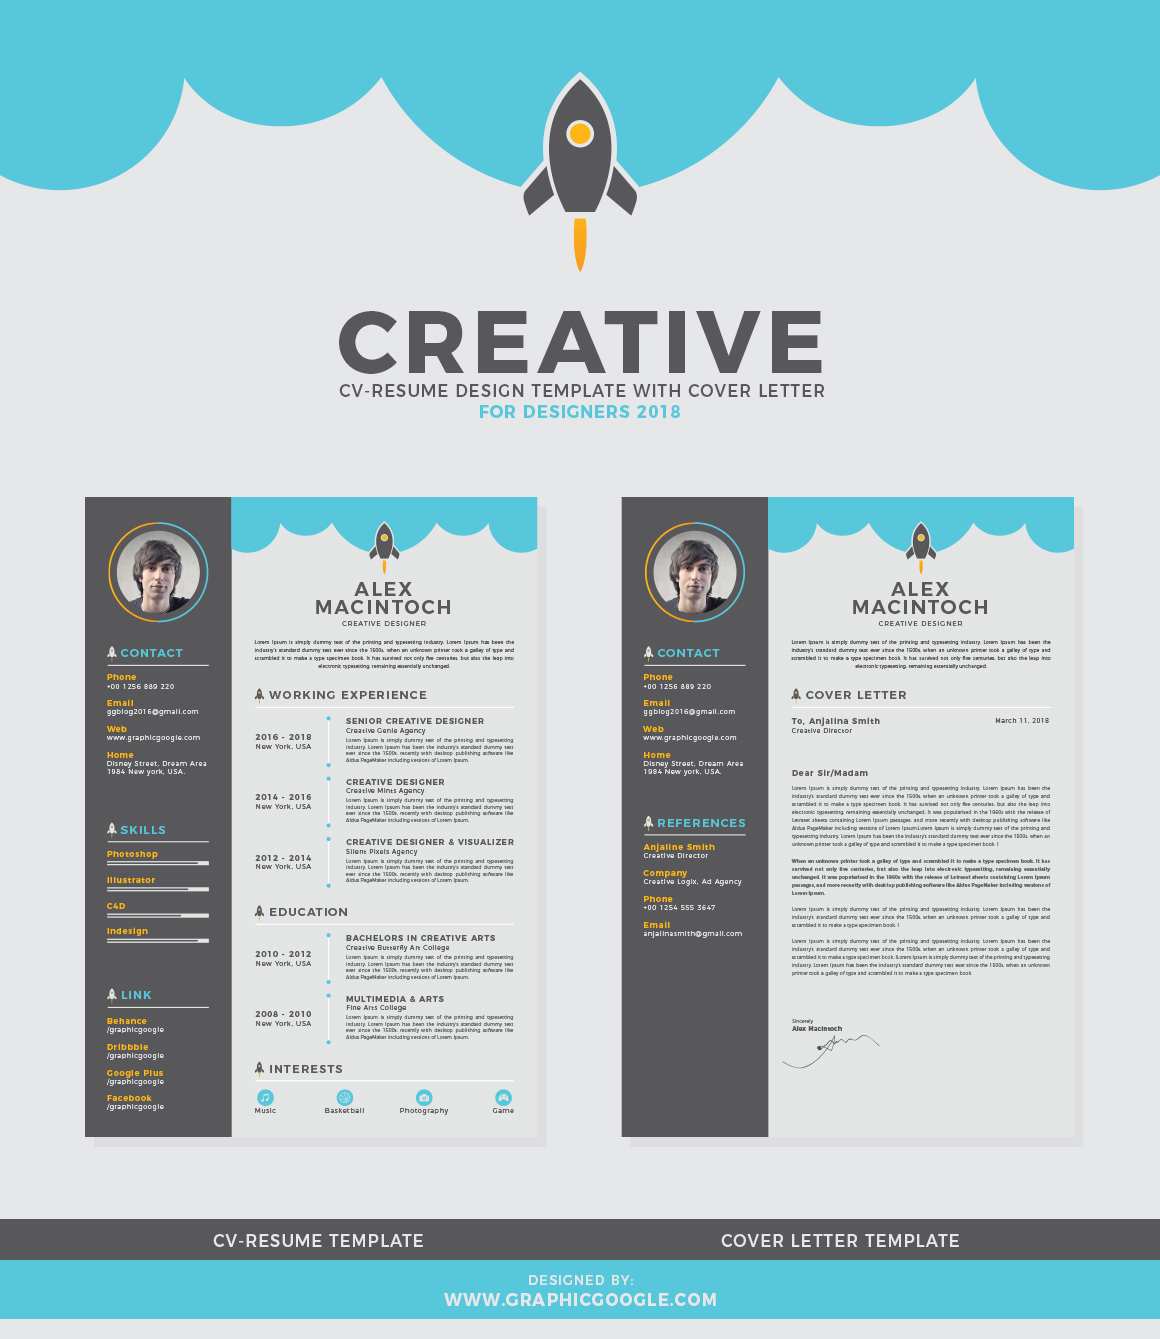 Free Creative Cv Resume Design Template With Cover Letter